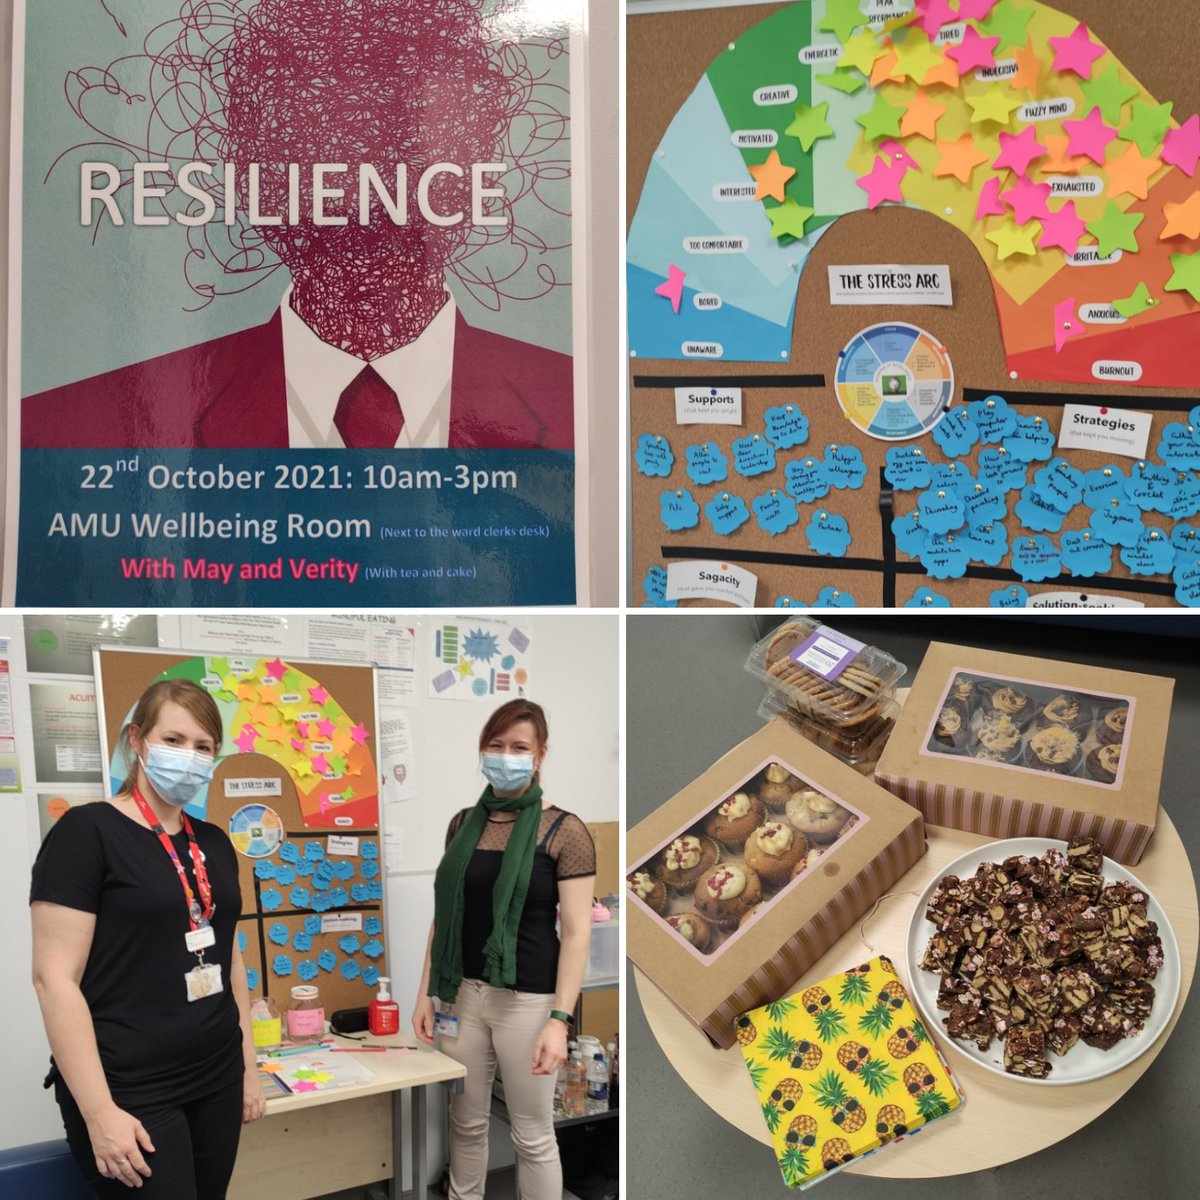 Our 4th Time to Talk about Mental Health Day focussing on resilience today. Thank you to all the staff that participated/contributed. Nice to hear from most of the MDT. #resilience #MentalHealthDay @Shaheen80506432 @vikkiD1974 @KerryJo42273478 @GarriganLynn @PNAdvocates